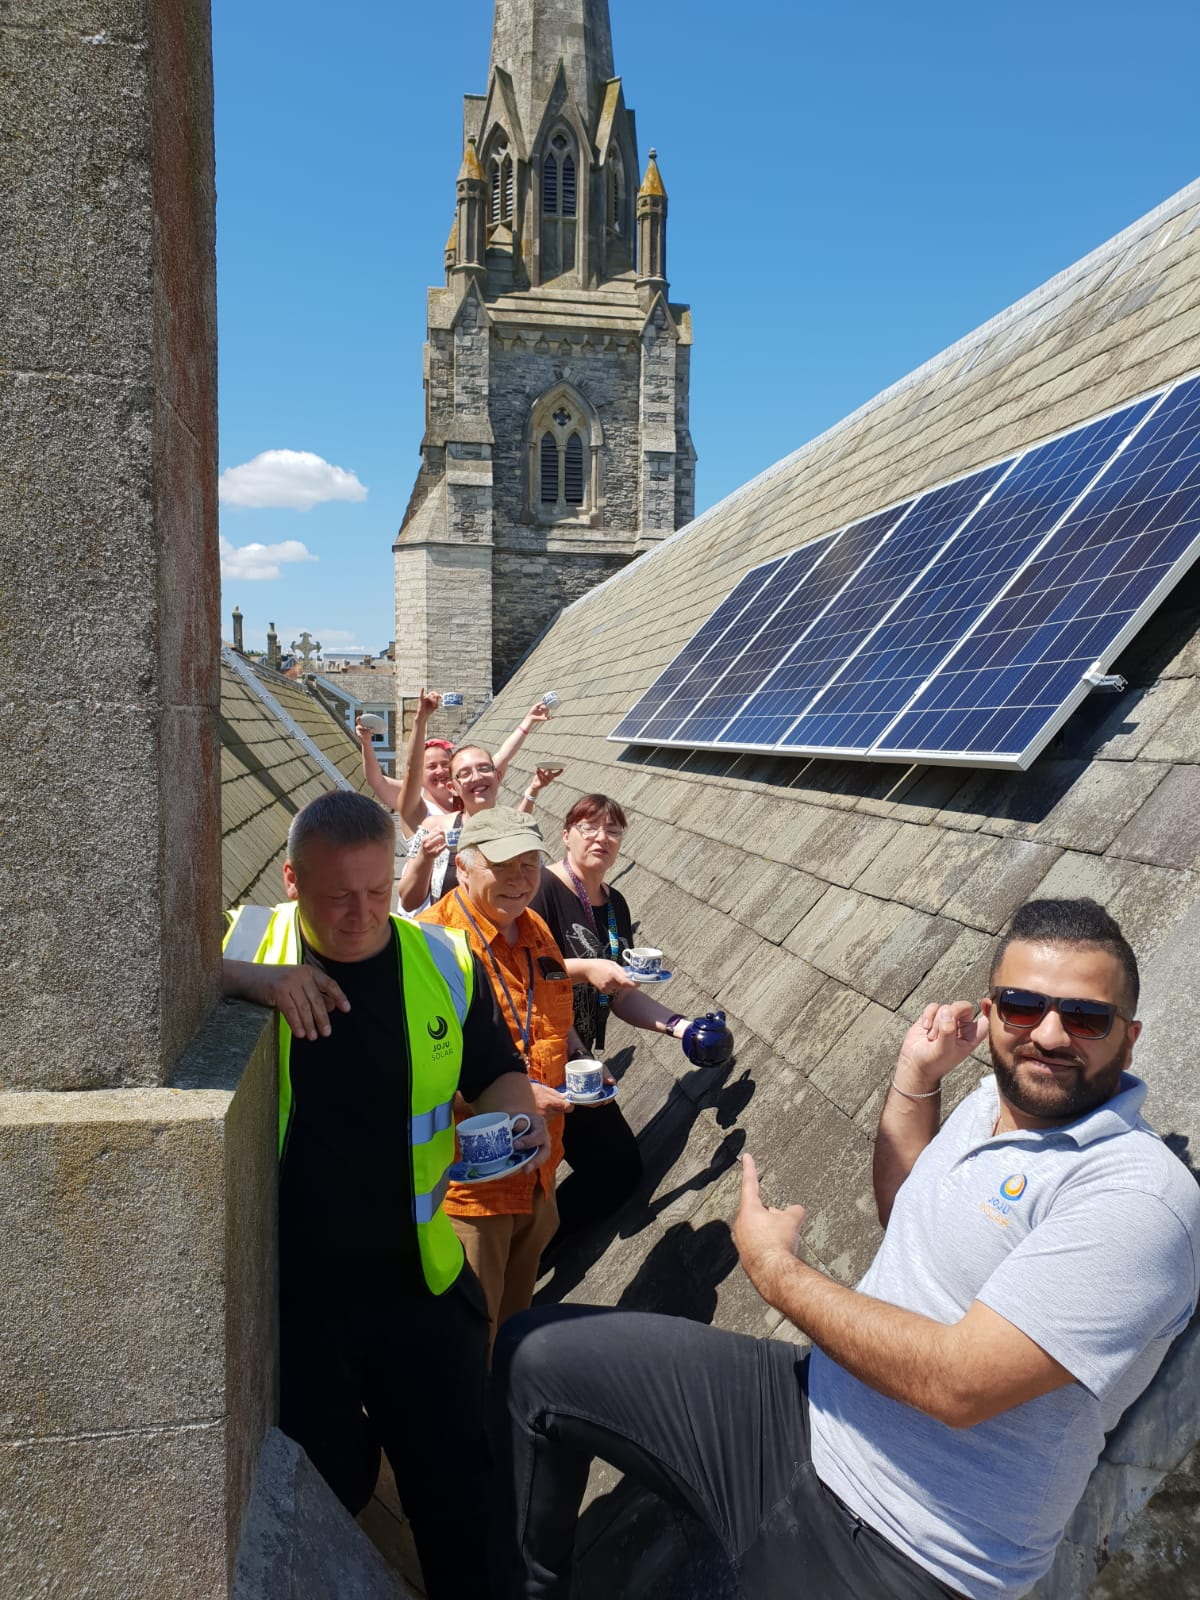 people install solar panels on church roof